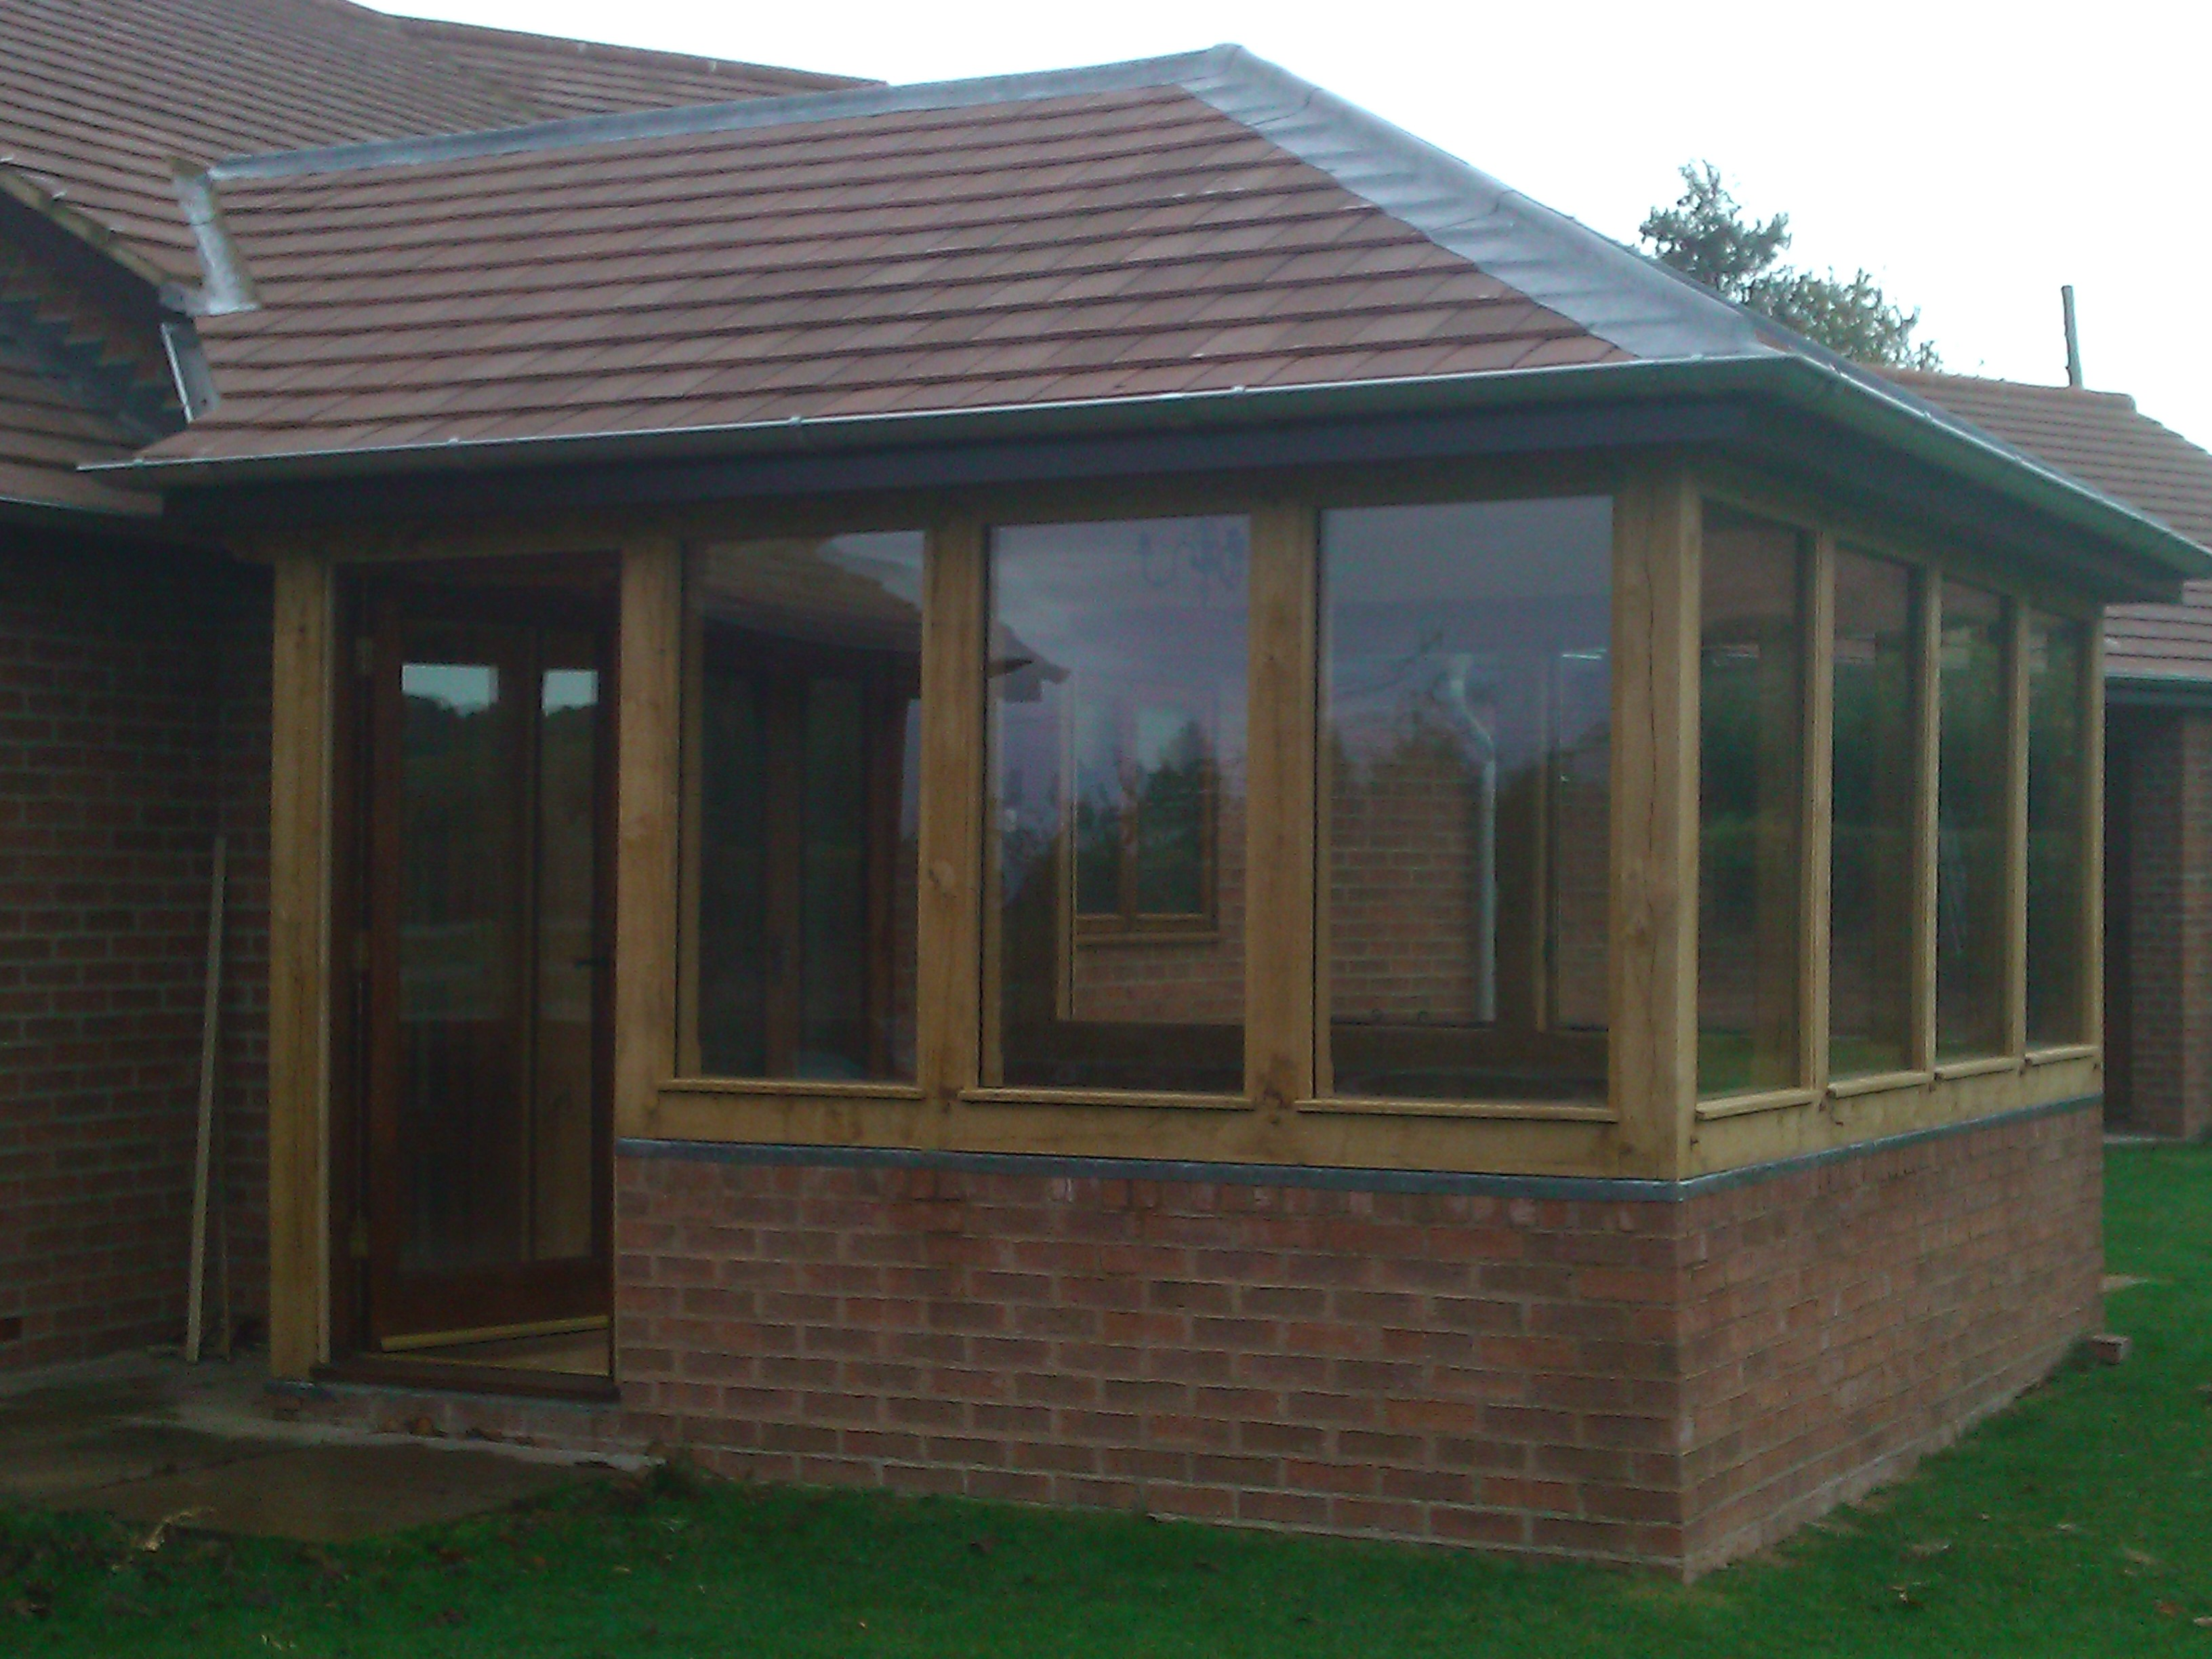 Oak framed conservatory with hipped roof